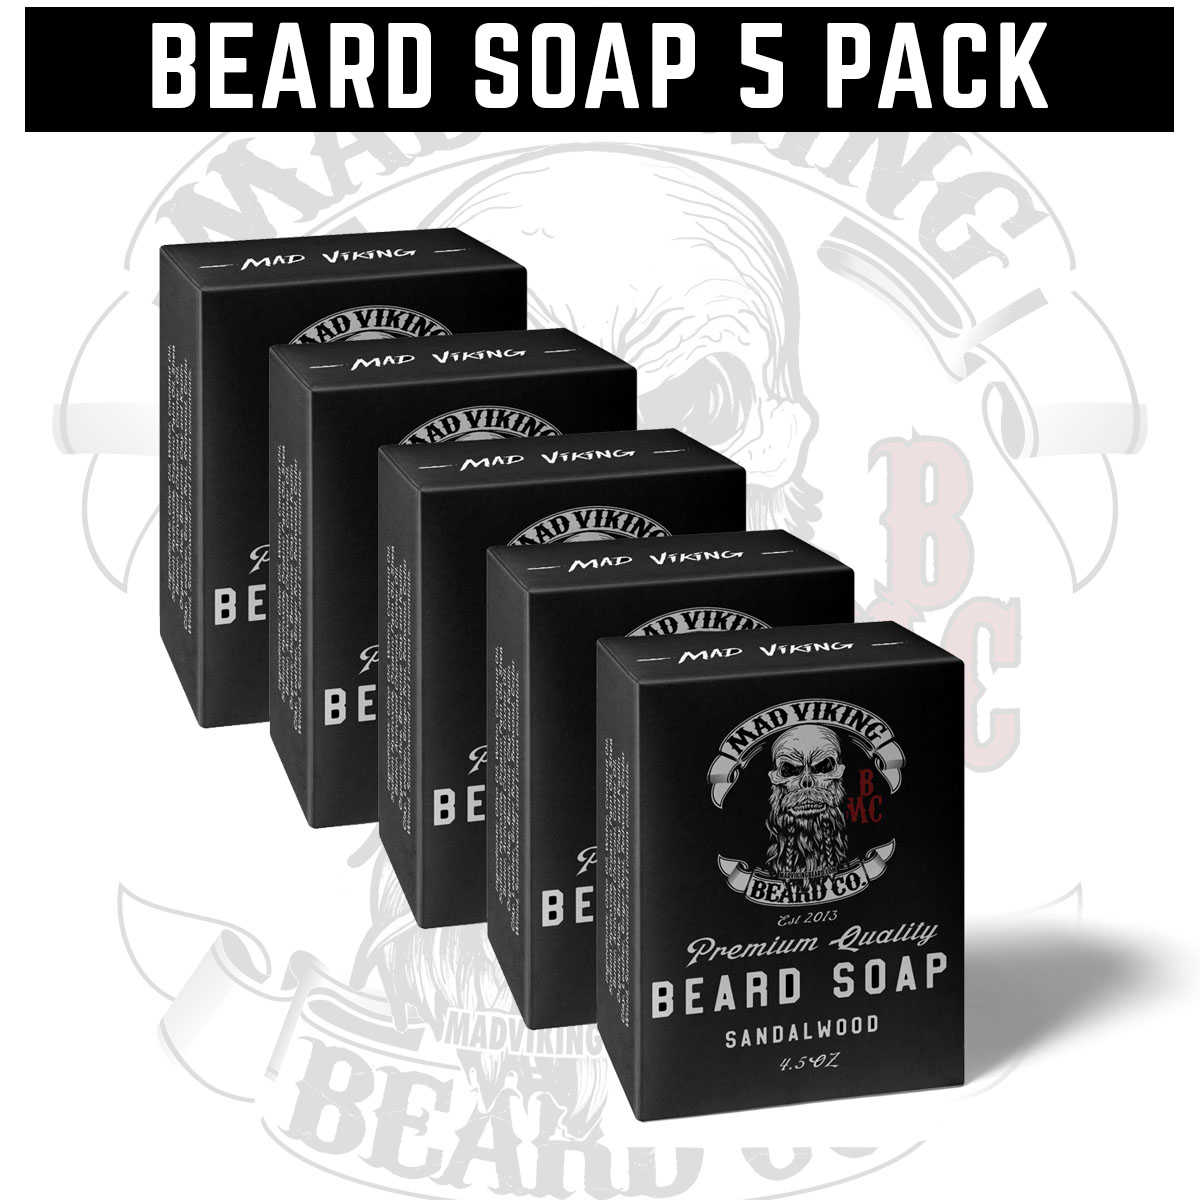 Beard Soap 5 Pack